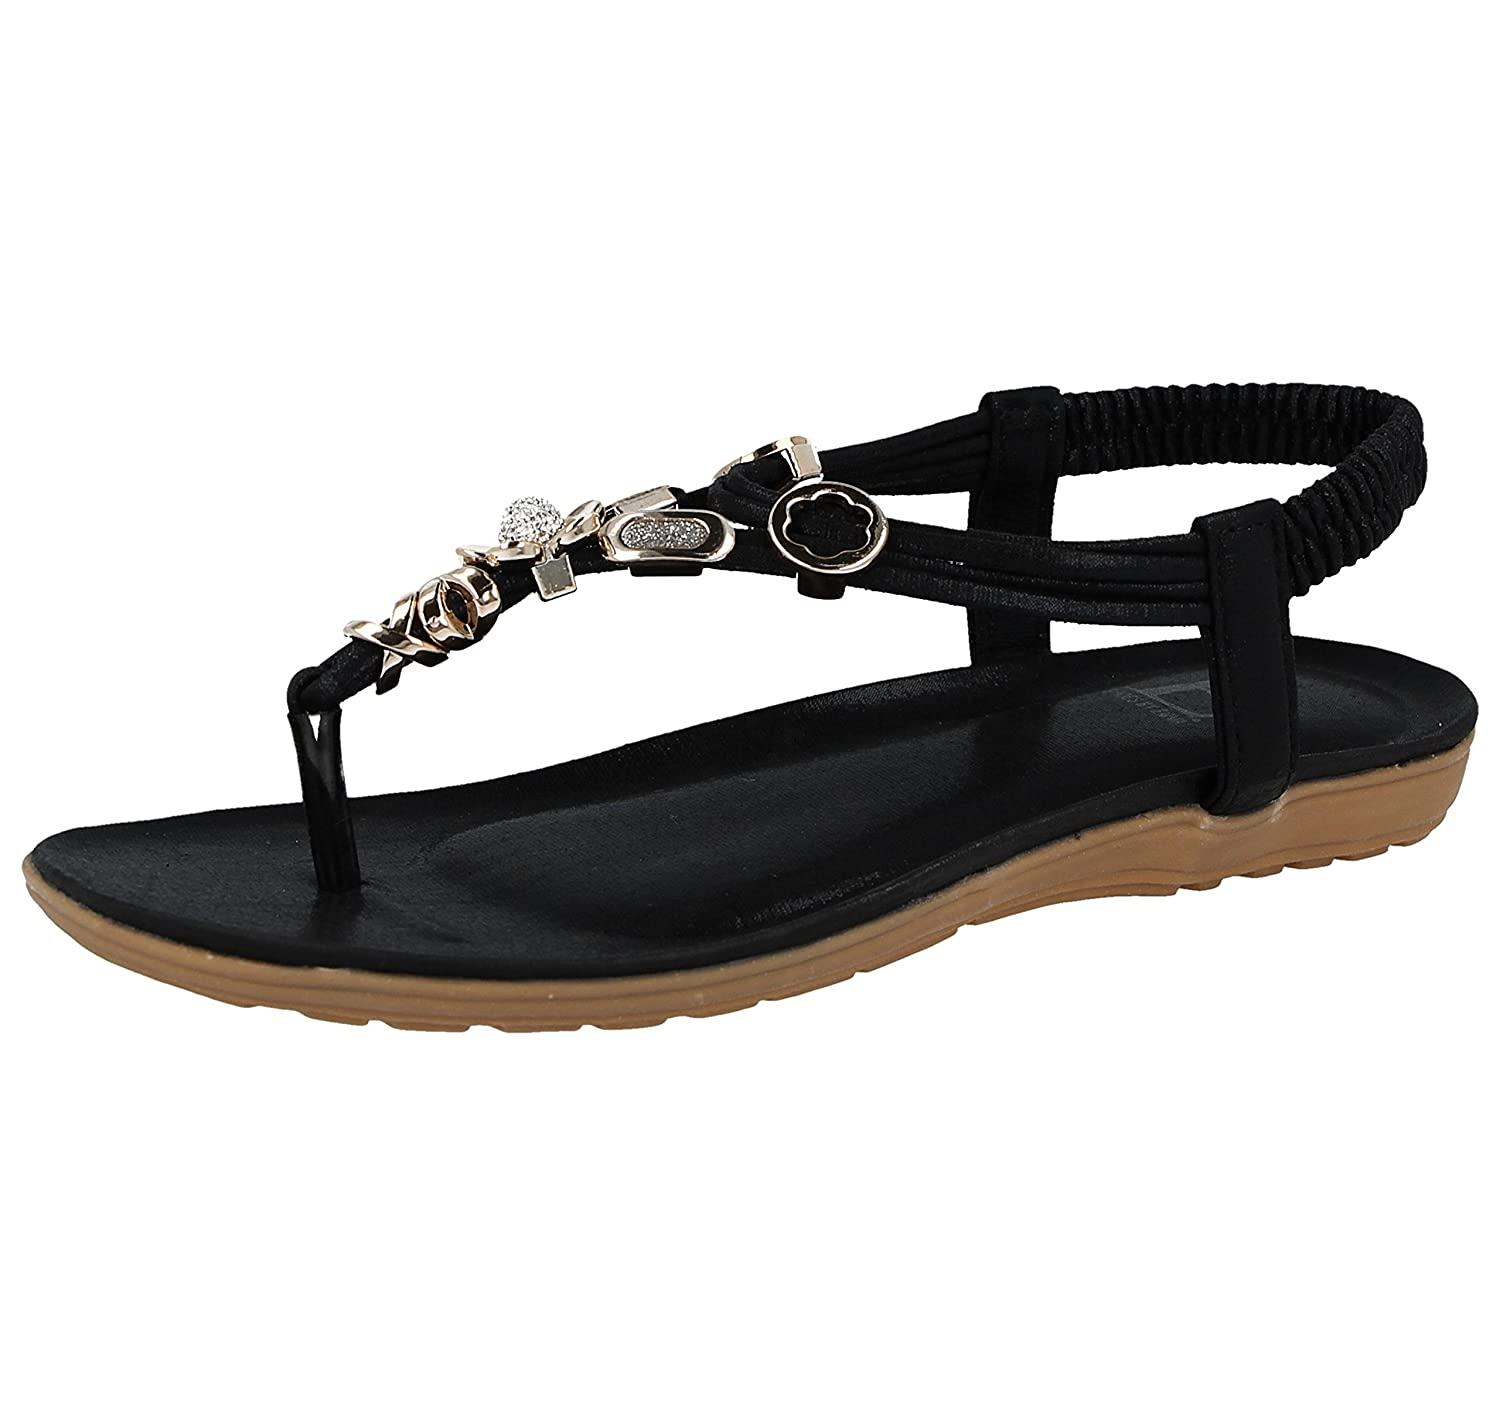 c533ecead5d Shoes By Emma Ladies Emma Faux Leather Metallic Toe Post Sling Back Low  Wedge Flat Summer Sandals Size 3-8  Amazon.co.uk  Shoes   Bags